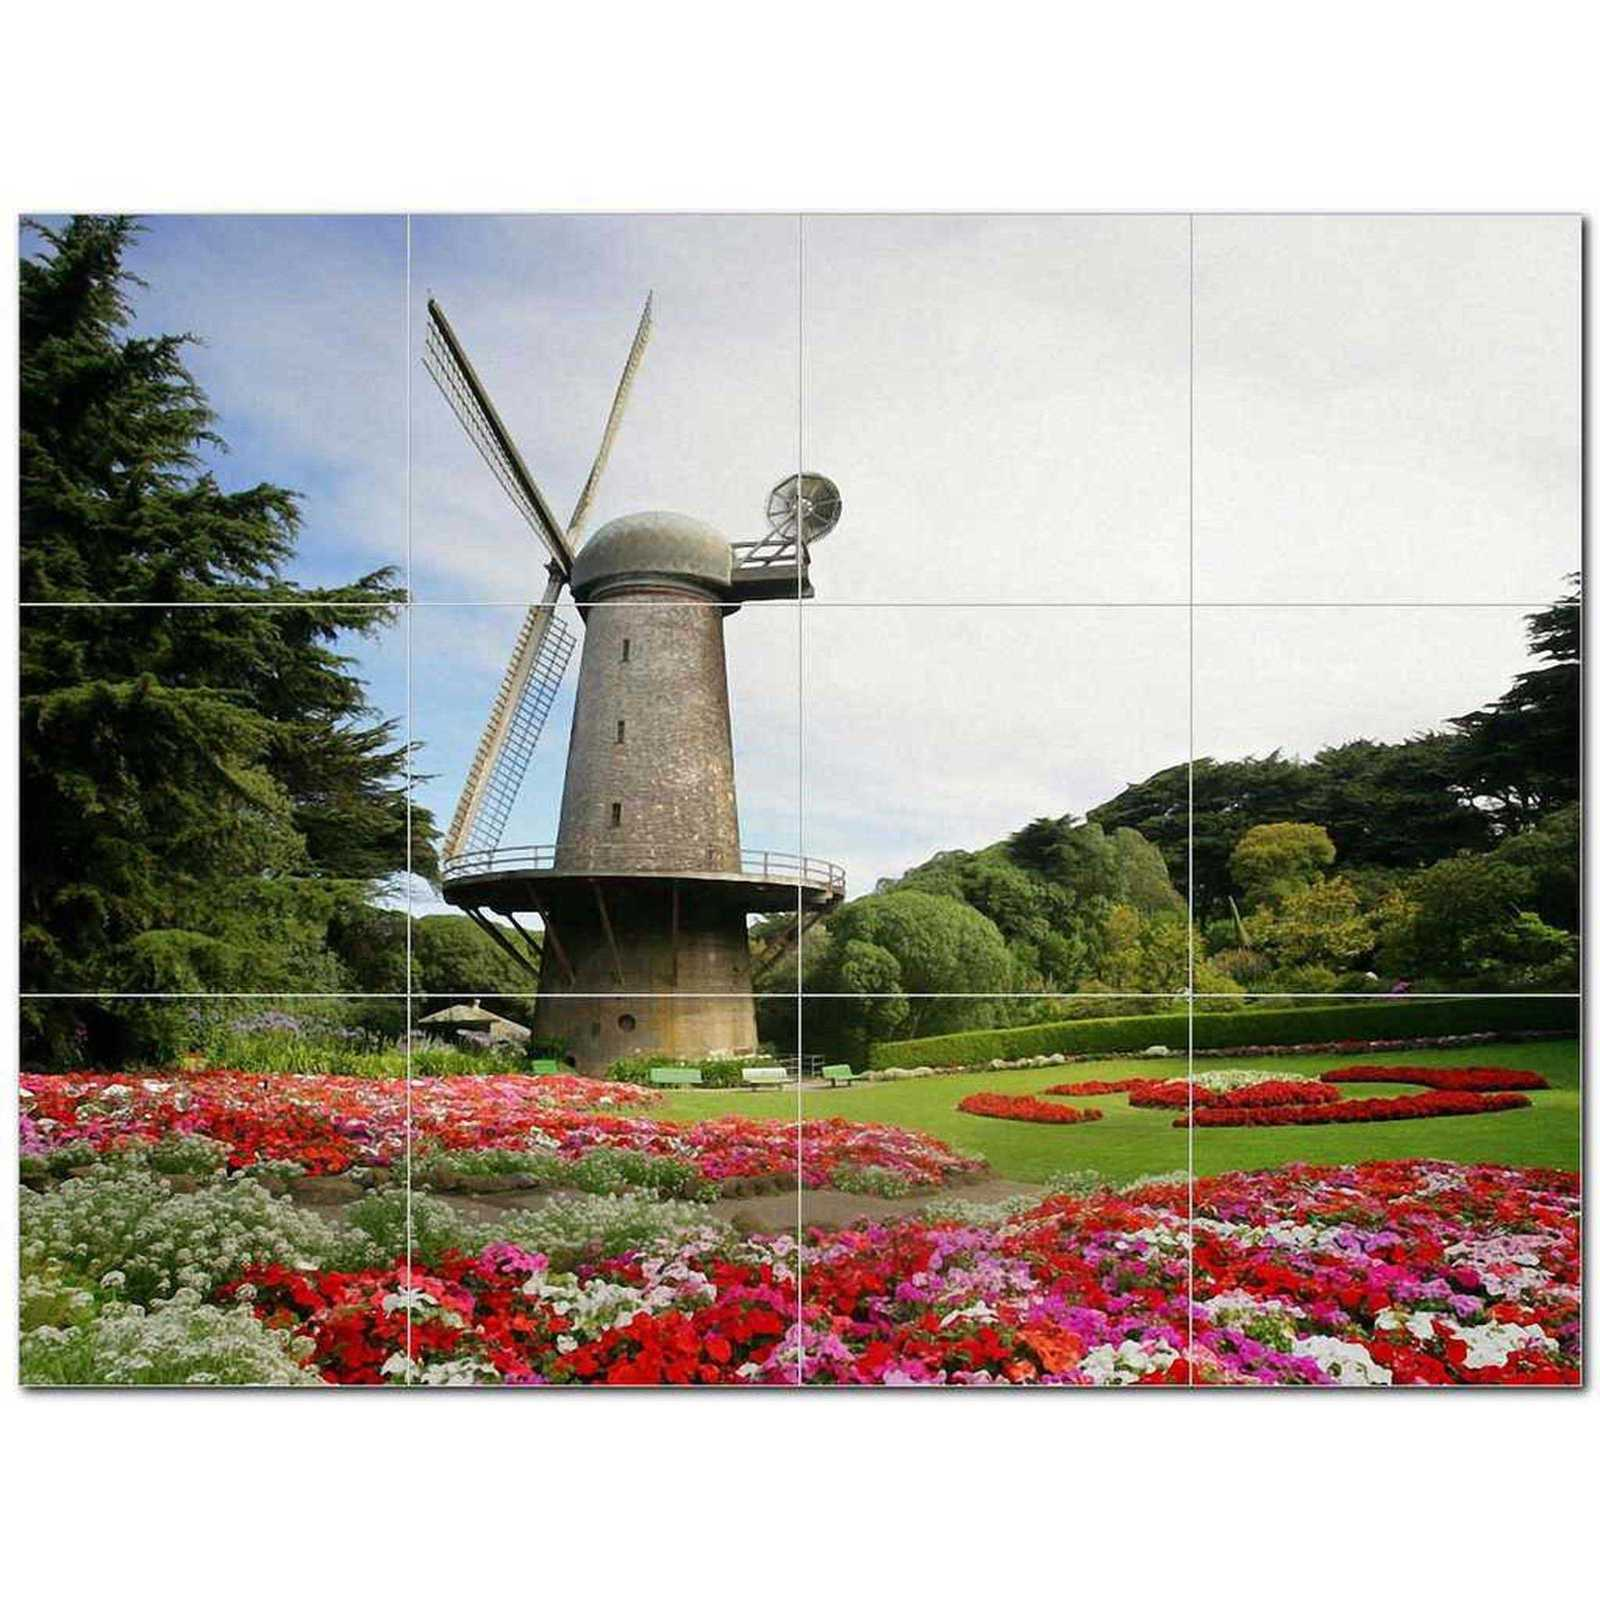 Primary image for Windmill Photo Ceramic Tile Mural Kitchen Backsplash Bathroom Shower BAZ406343